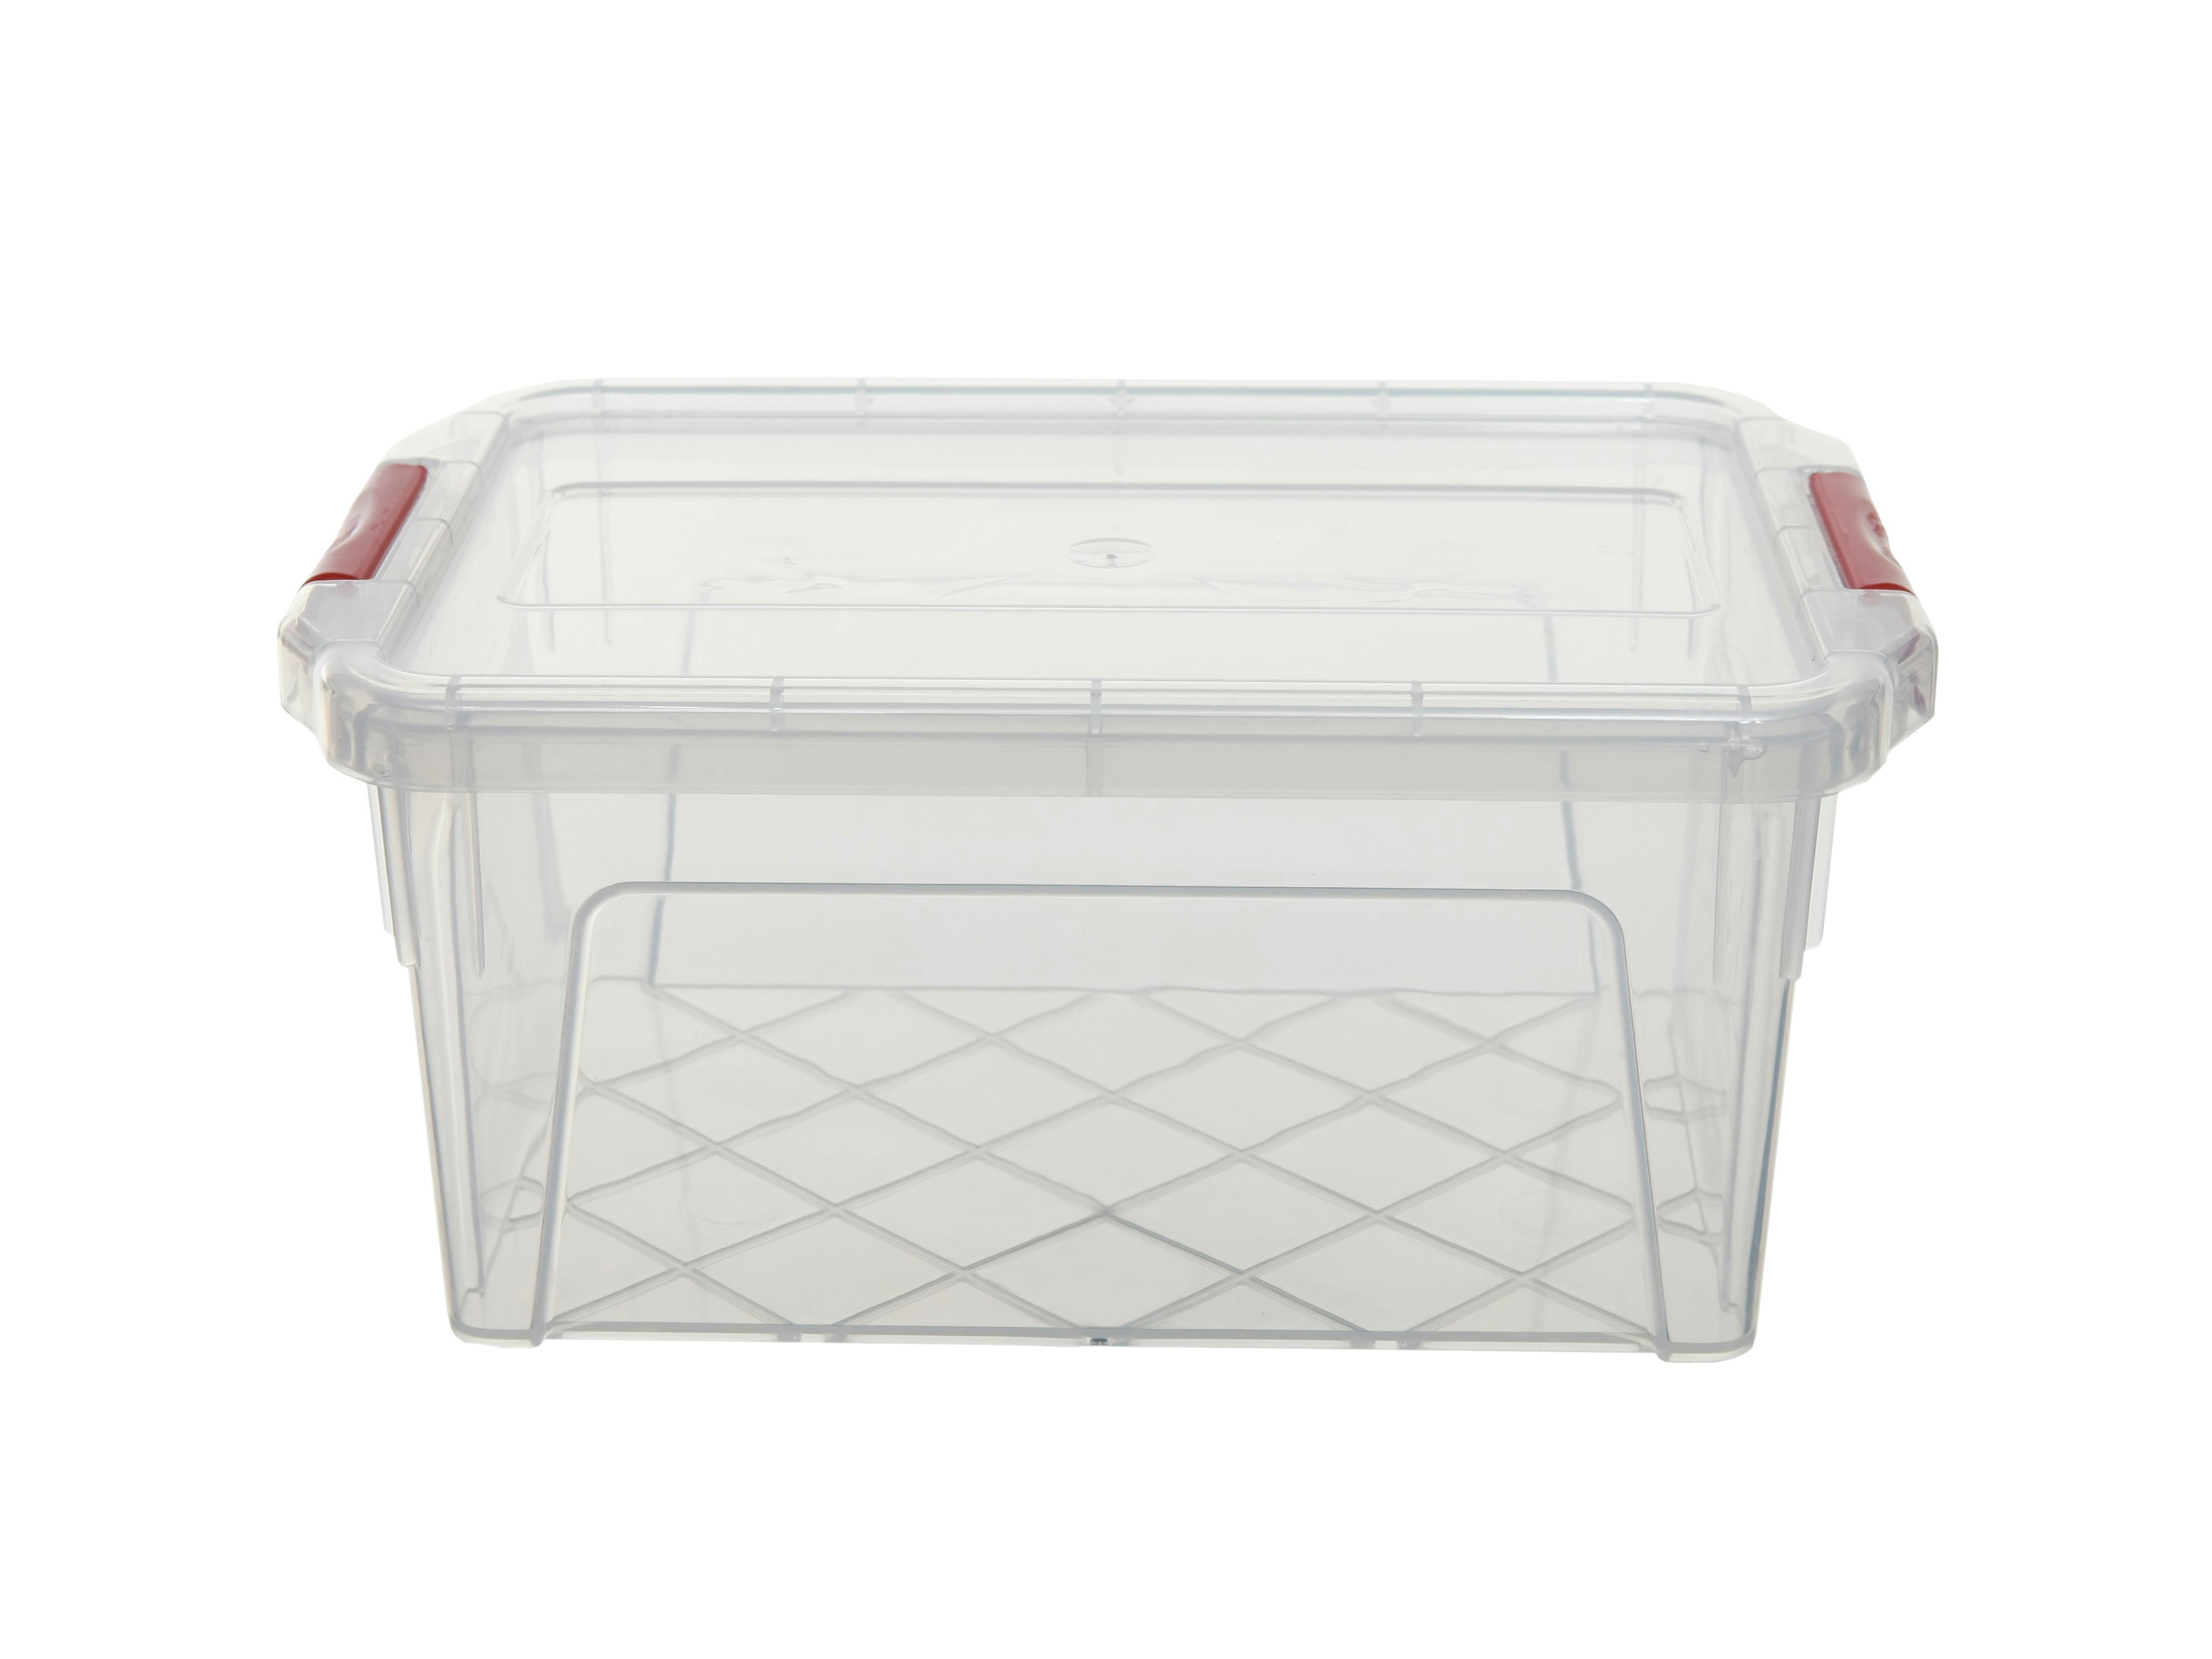 plastic storage boxes for kitchen clip top storage boxes 0 25l 2l plastic kitchen hobby 7505